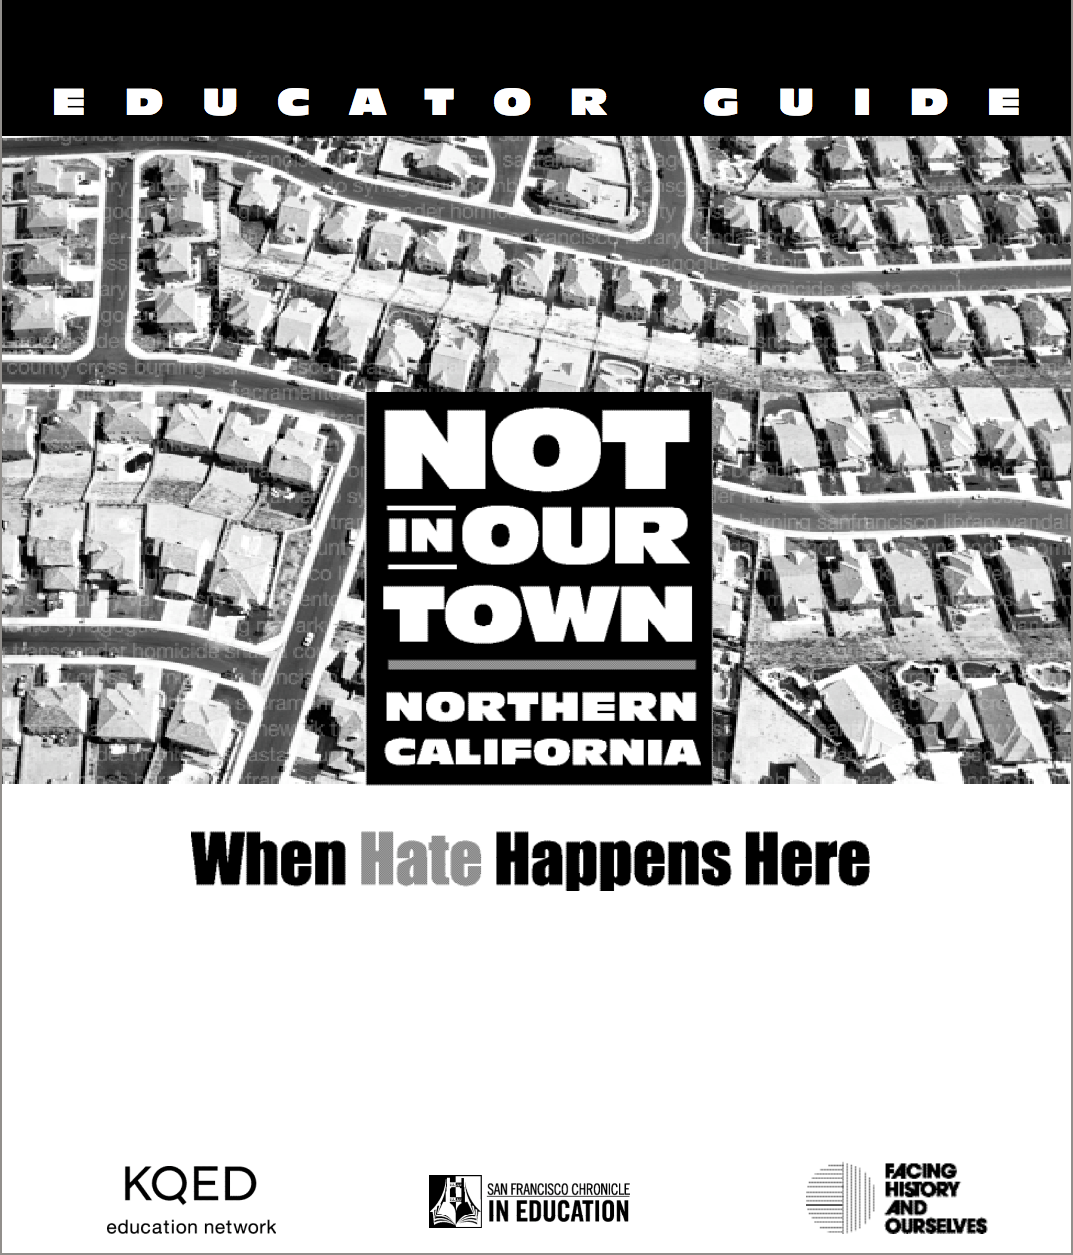 N-California-When-Hate-Happens-Here.png